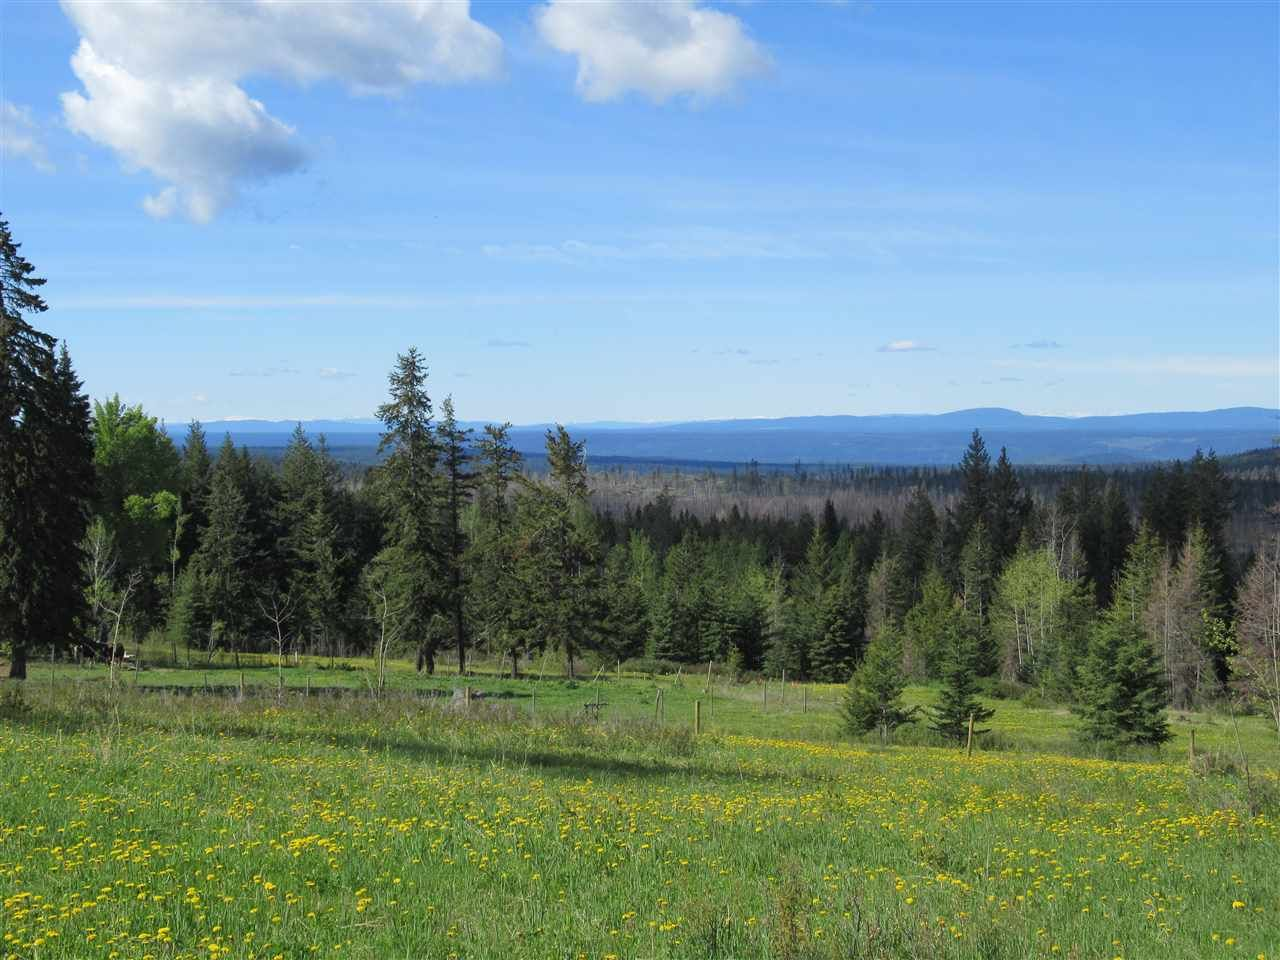 Main Photo: 1245 SCHEFFLER Road: 150 Mile House Land for sale (Williams Lake (Zone 27))  : MLS®# R2542760